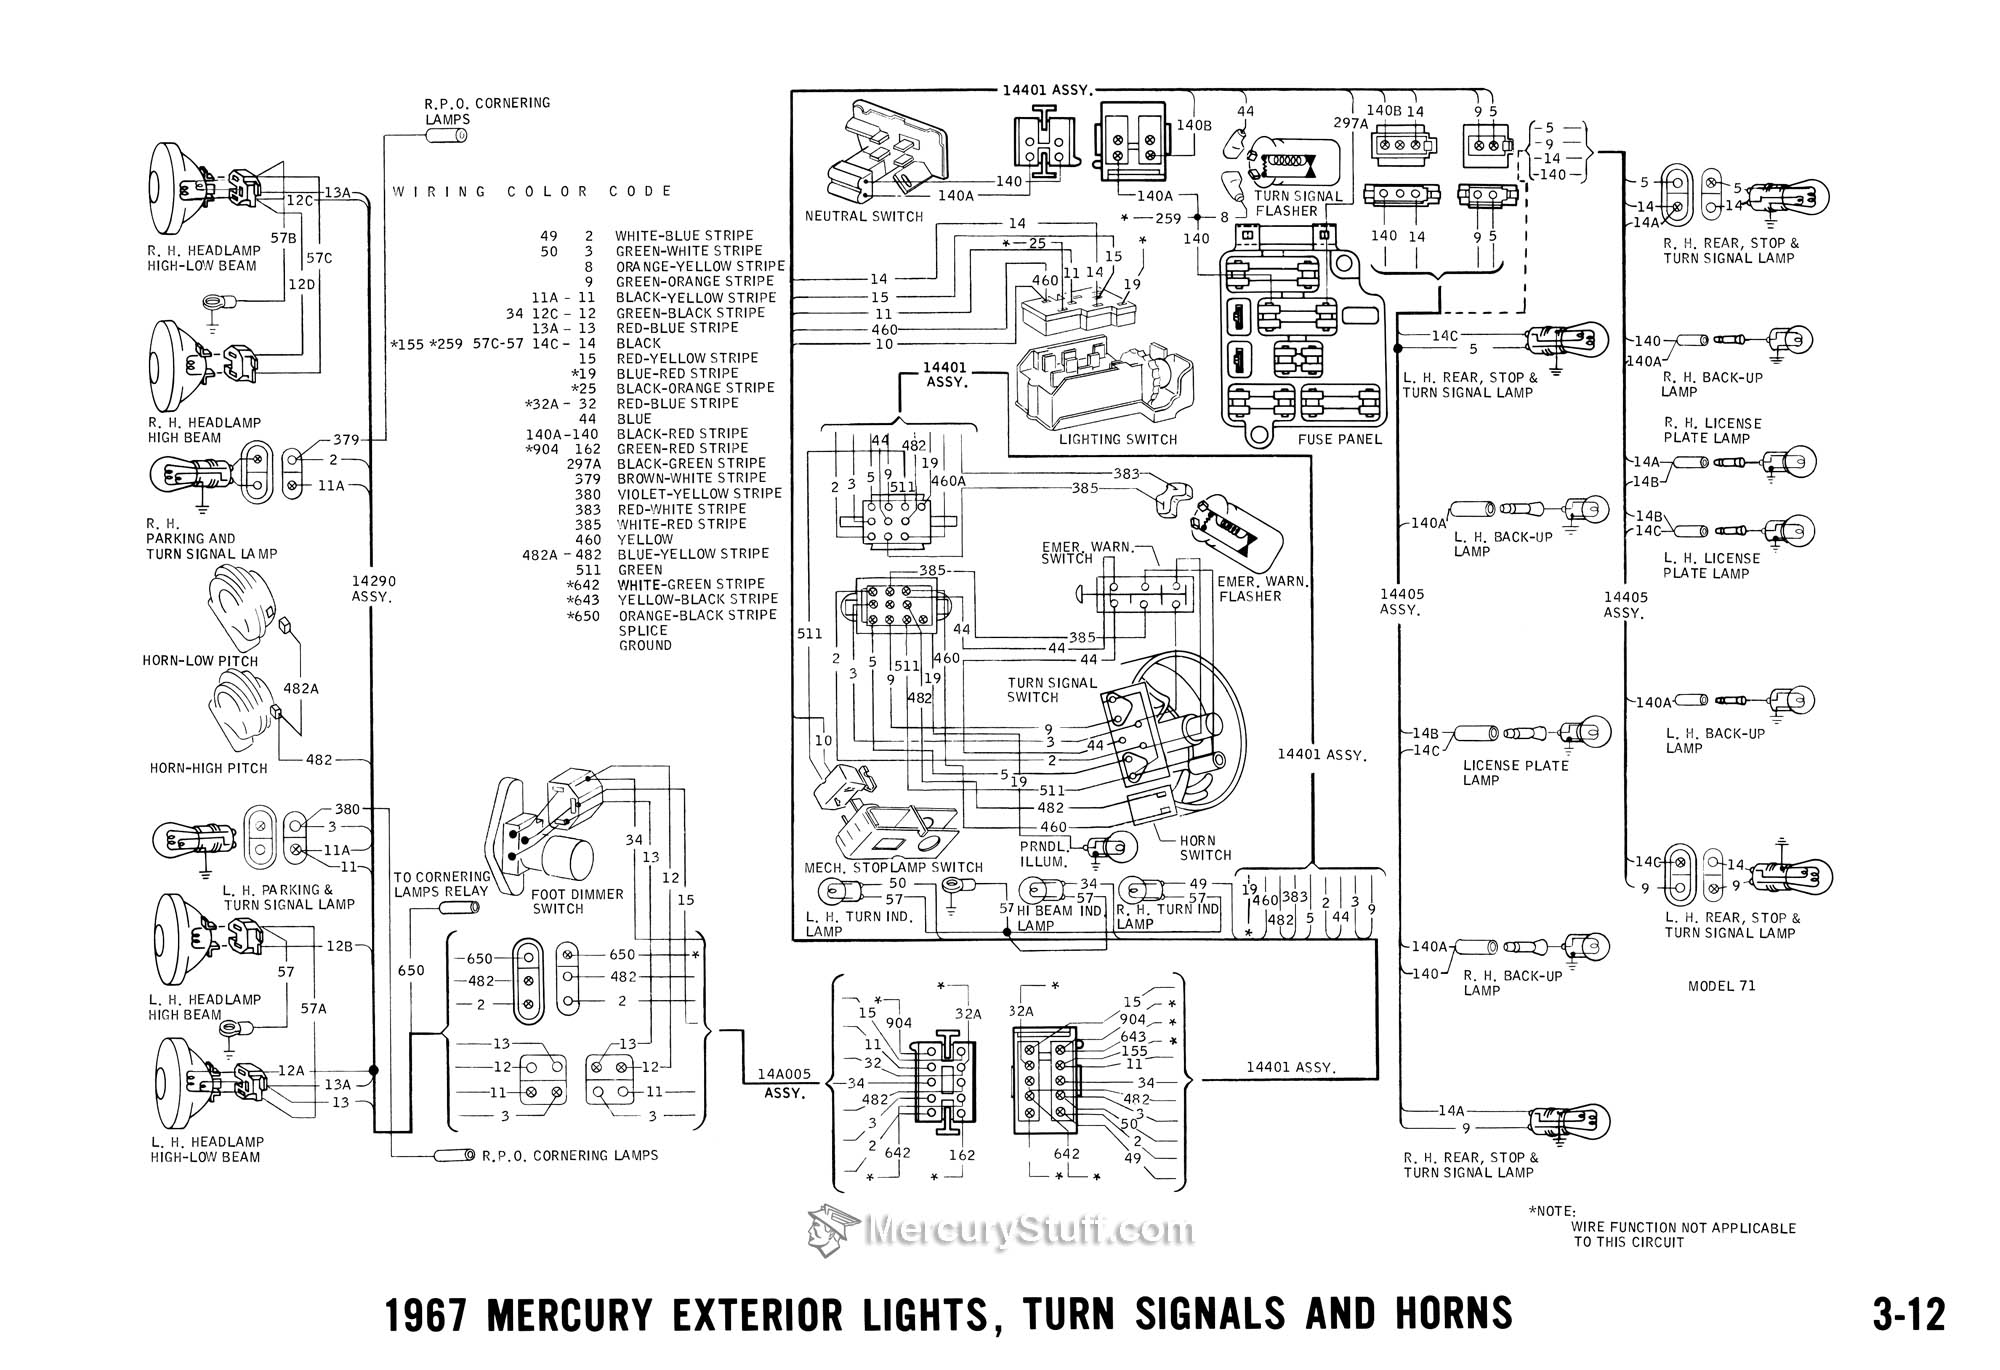 1967 mercury exterior lights turn signals horns wiring diagram 2006 mercury grand marquis the wiring diagram Mercury Cougar Air Conditioning Diagram at bakdesigns.co